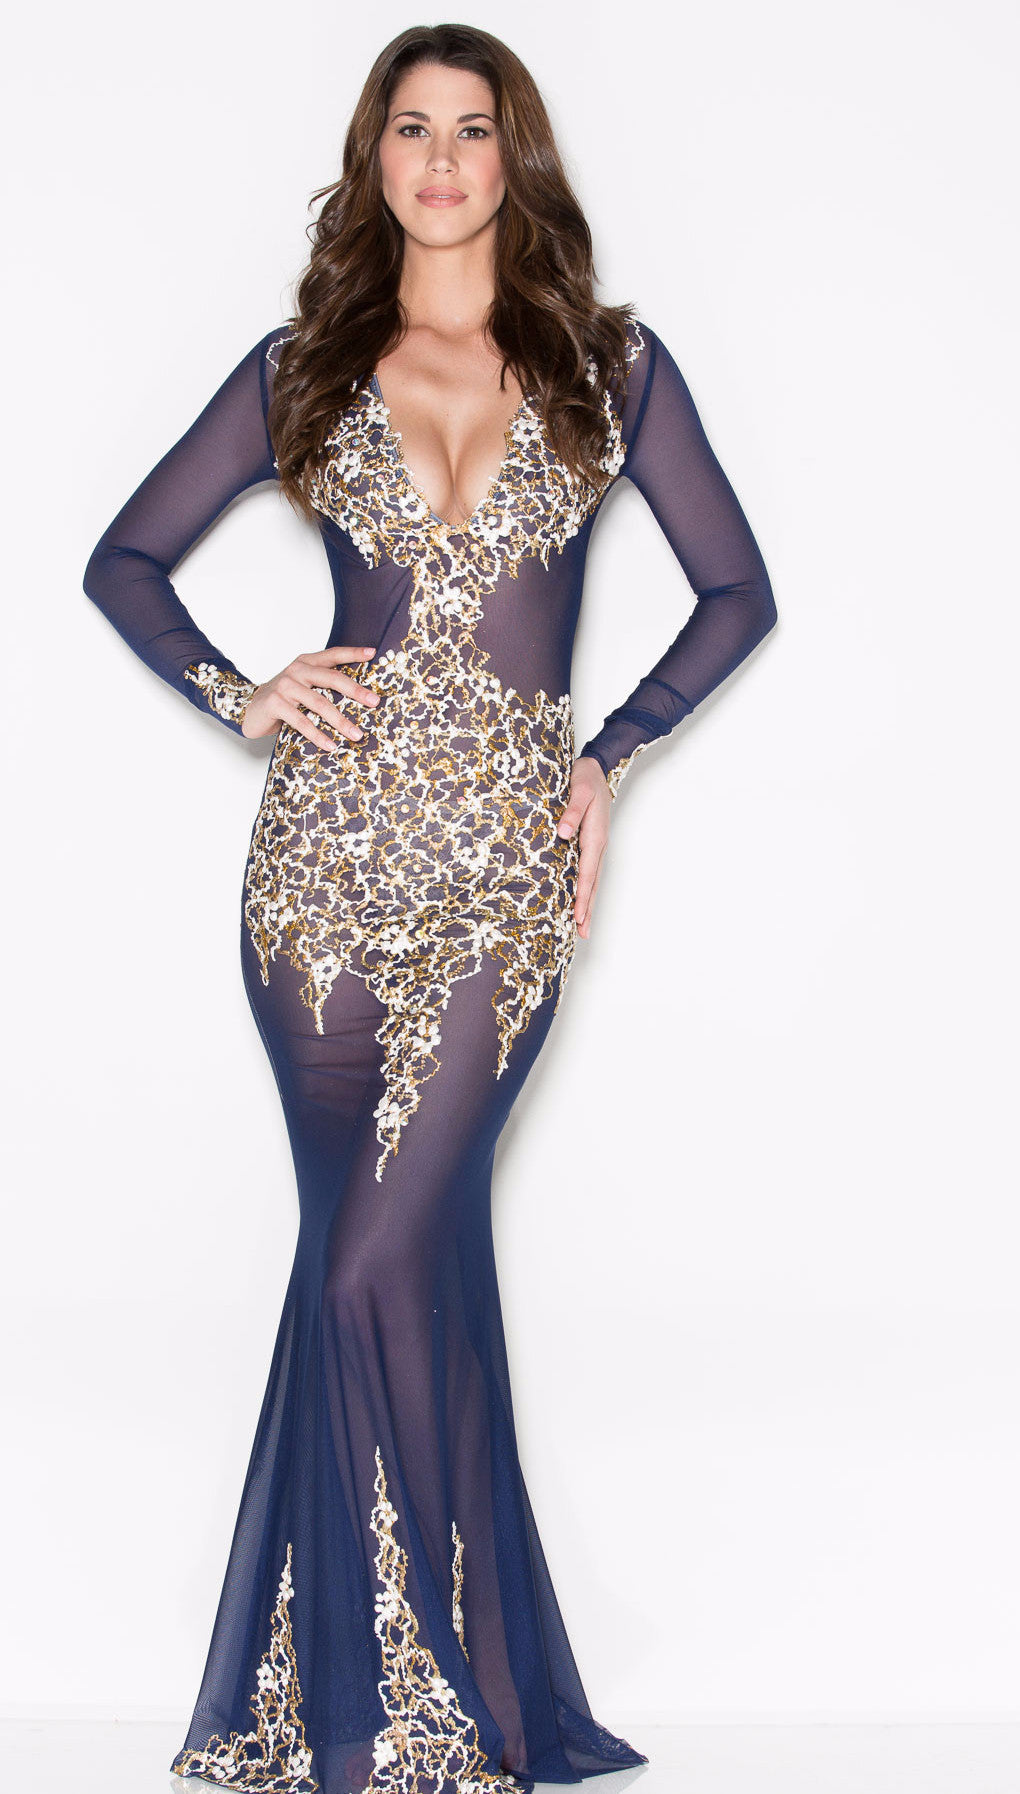 BEYONCE' GOWN IN NAVY WITH WHITE AND GOLD - HOLT